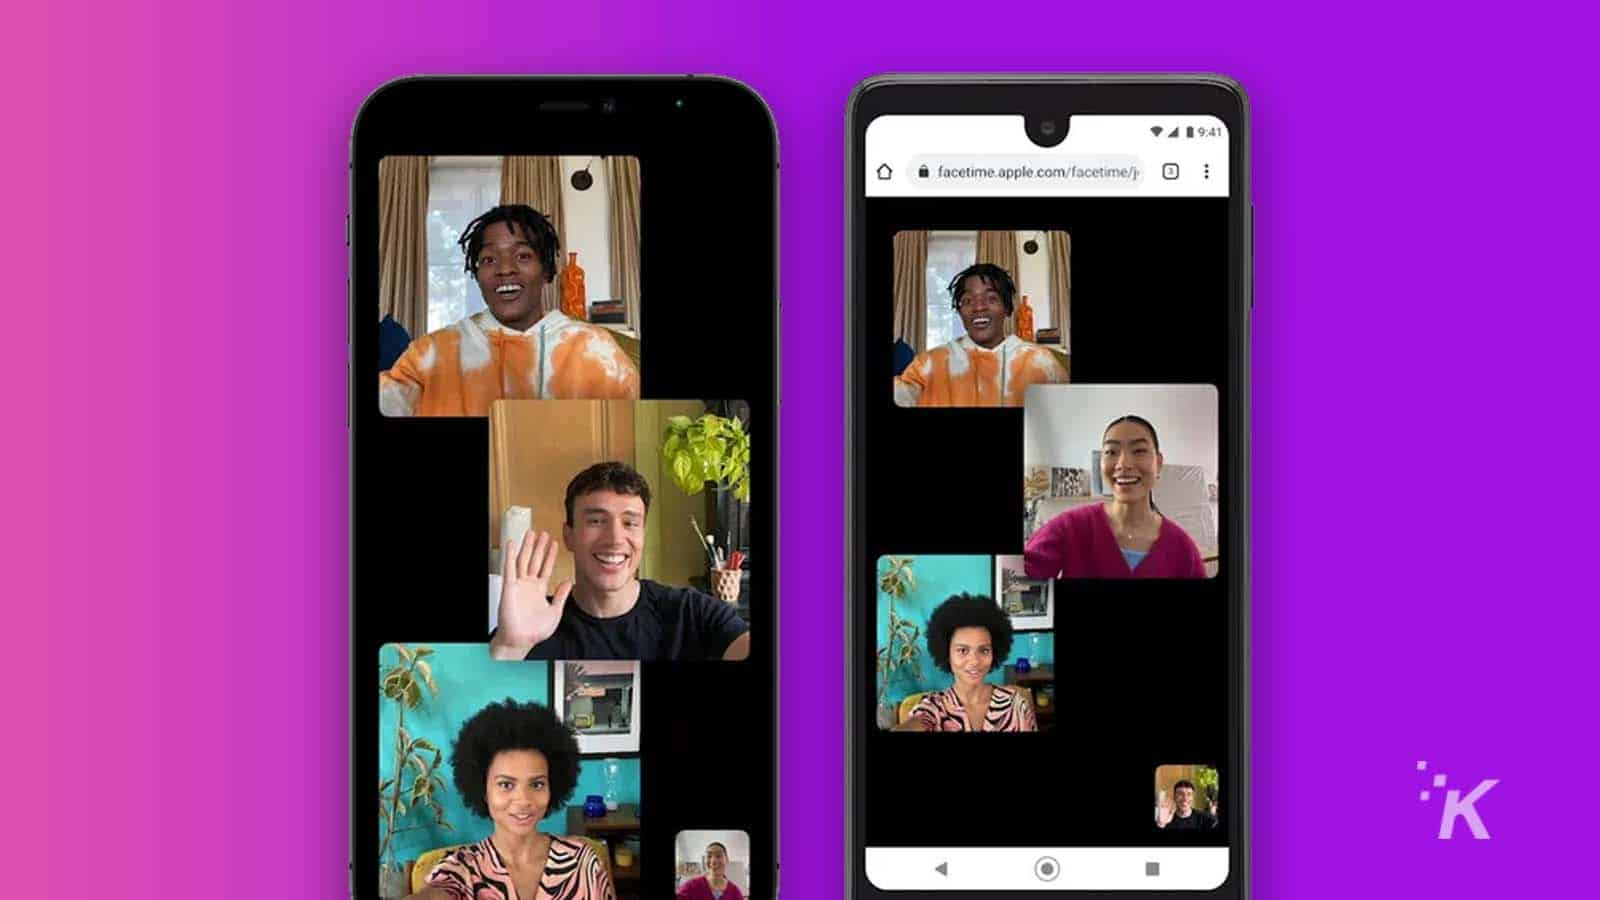 apple facetime on android phone